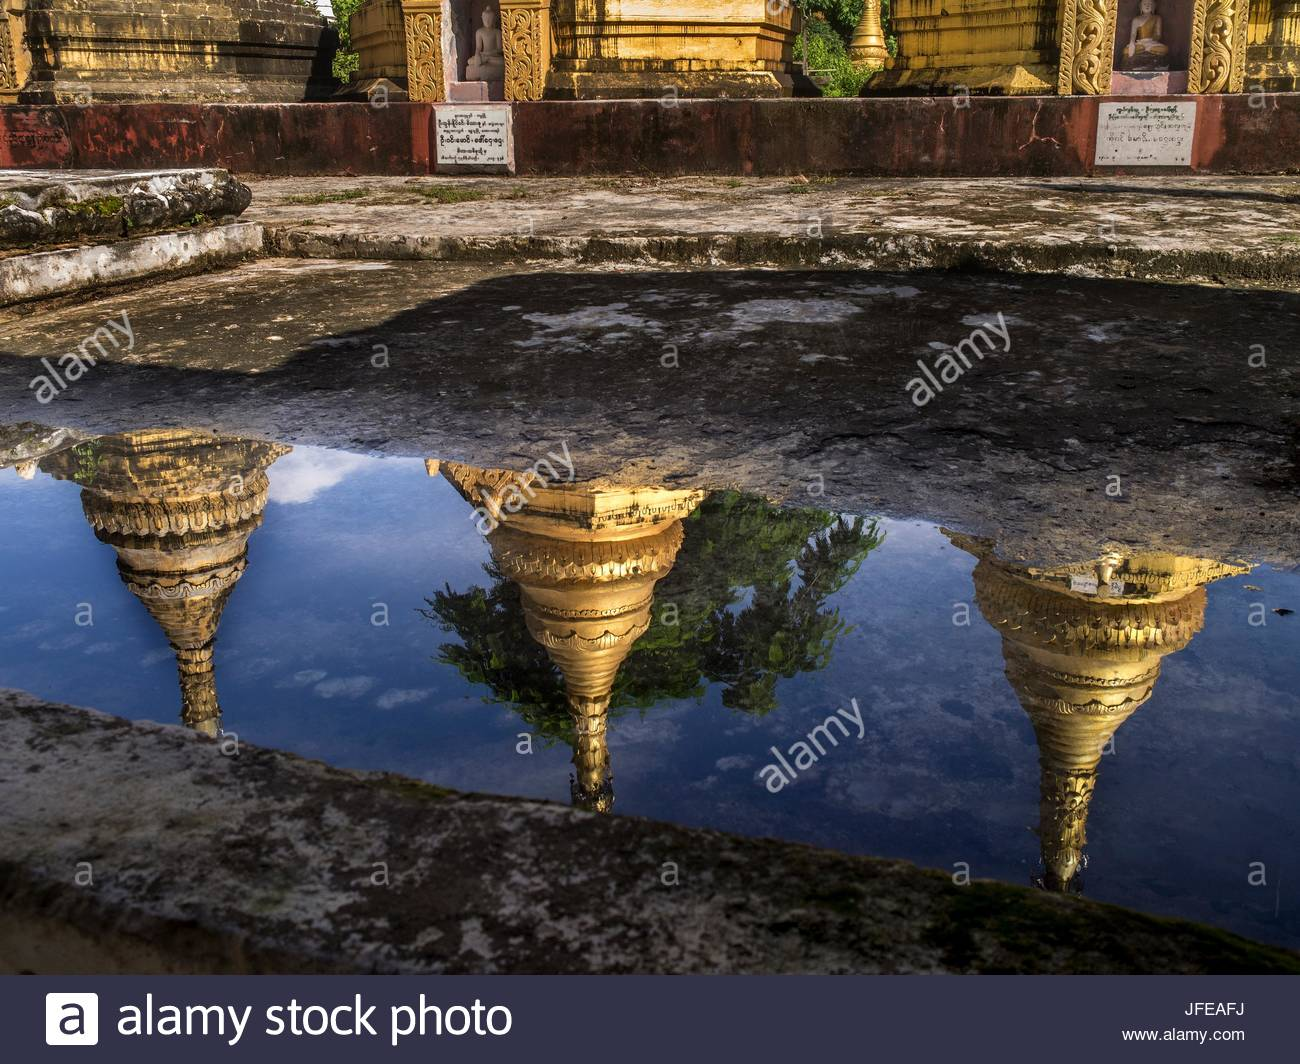 Pagodas are reflected in a puddle of water. - Stock Image